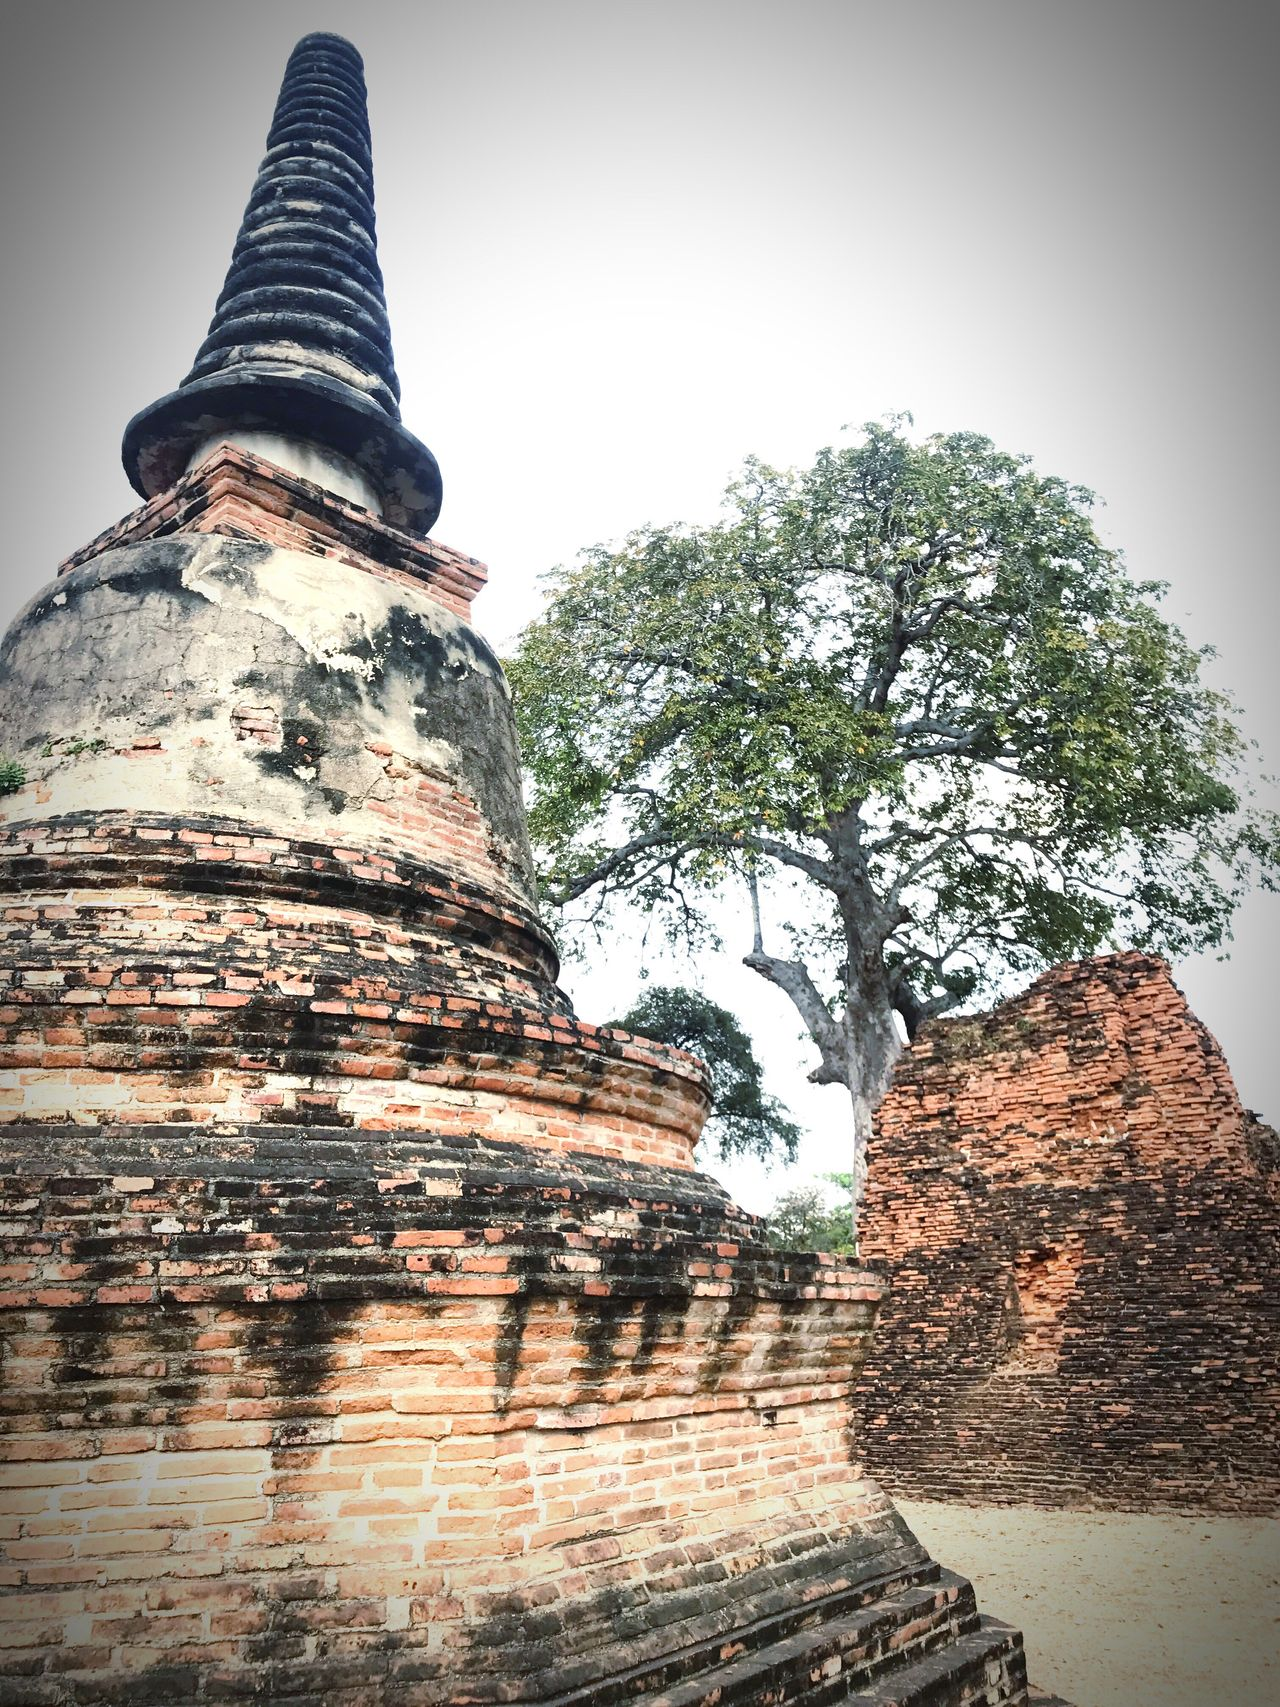 History Historic Timemachine In The Past Remember Old Age Ancient Architecture Ayutthaya Thailand EyeEmNewHere Broken Blicks Dreaming